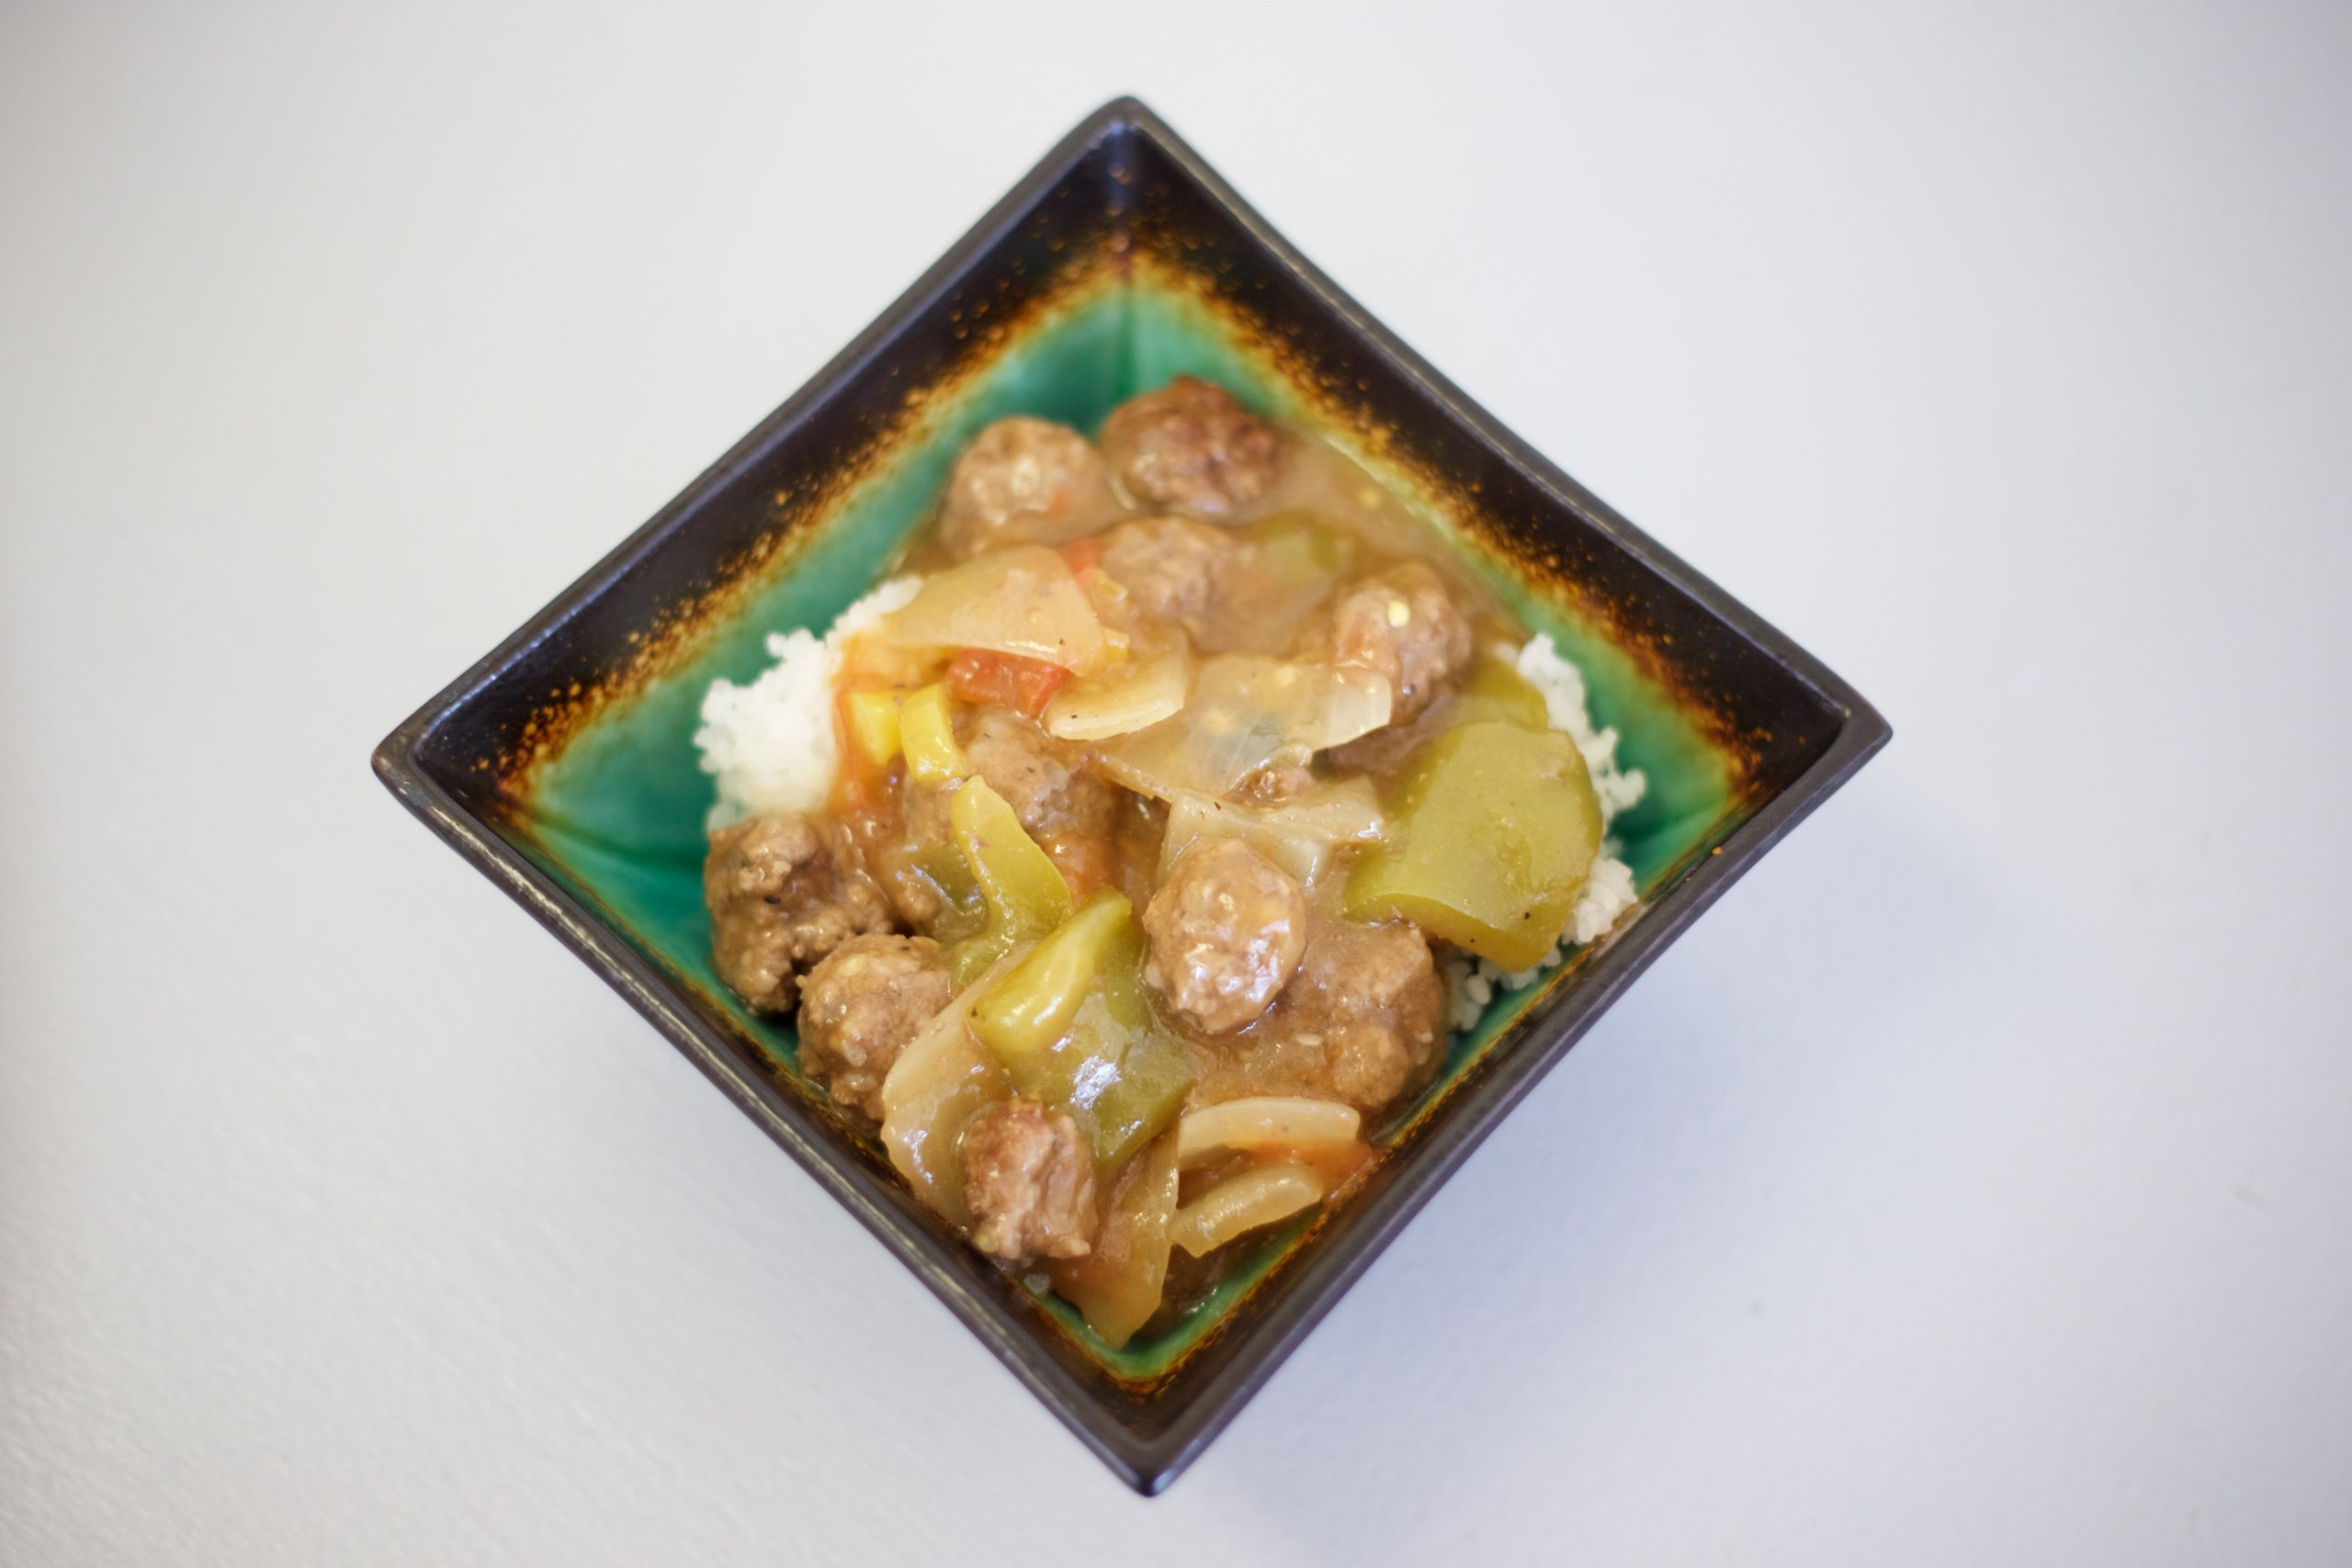 Chili Meat: A Rock Springs Dish With Chinese and Mexican Roots